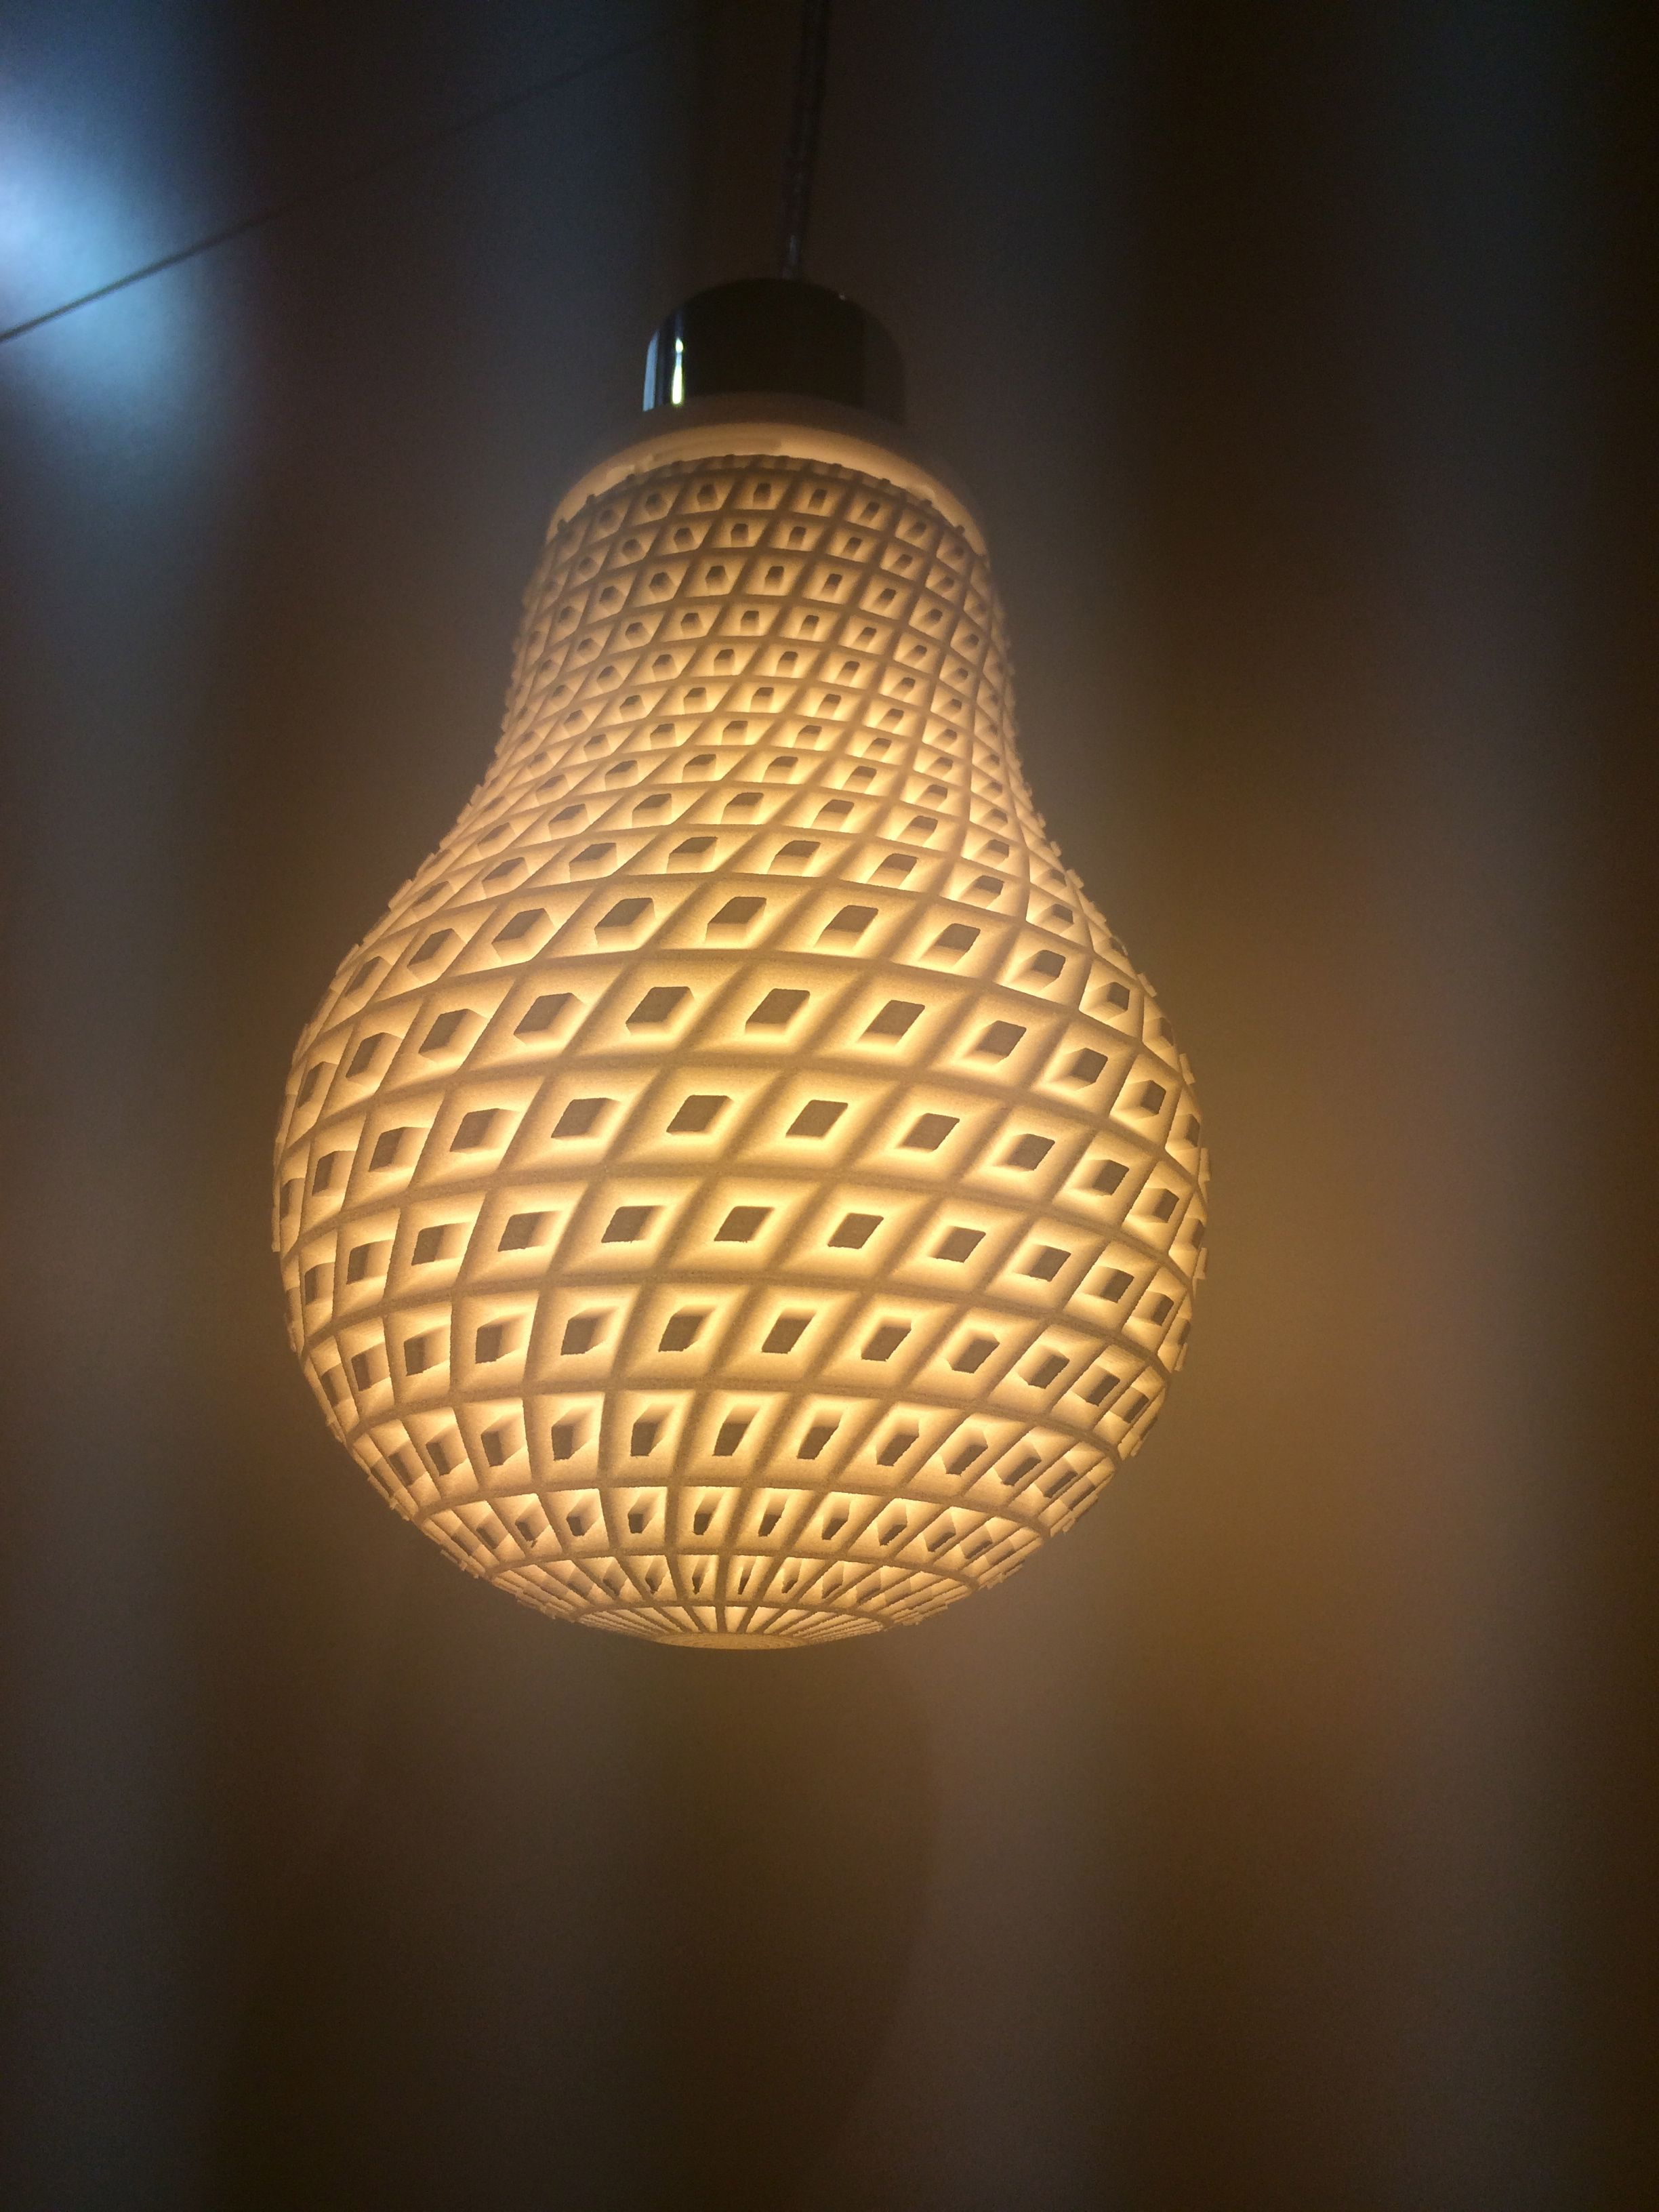 Innenbeleuchtung Design Quote 3d Printed Light Shade 3dprintedlightning 3d Printed Lightning